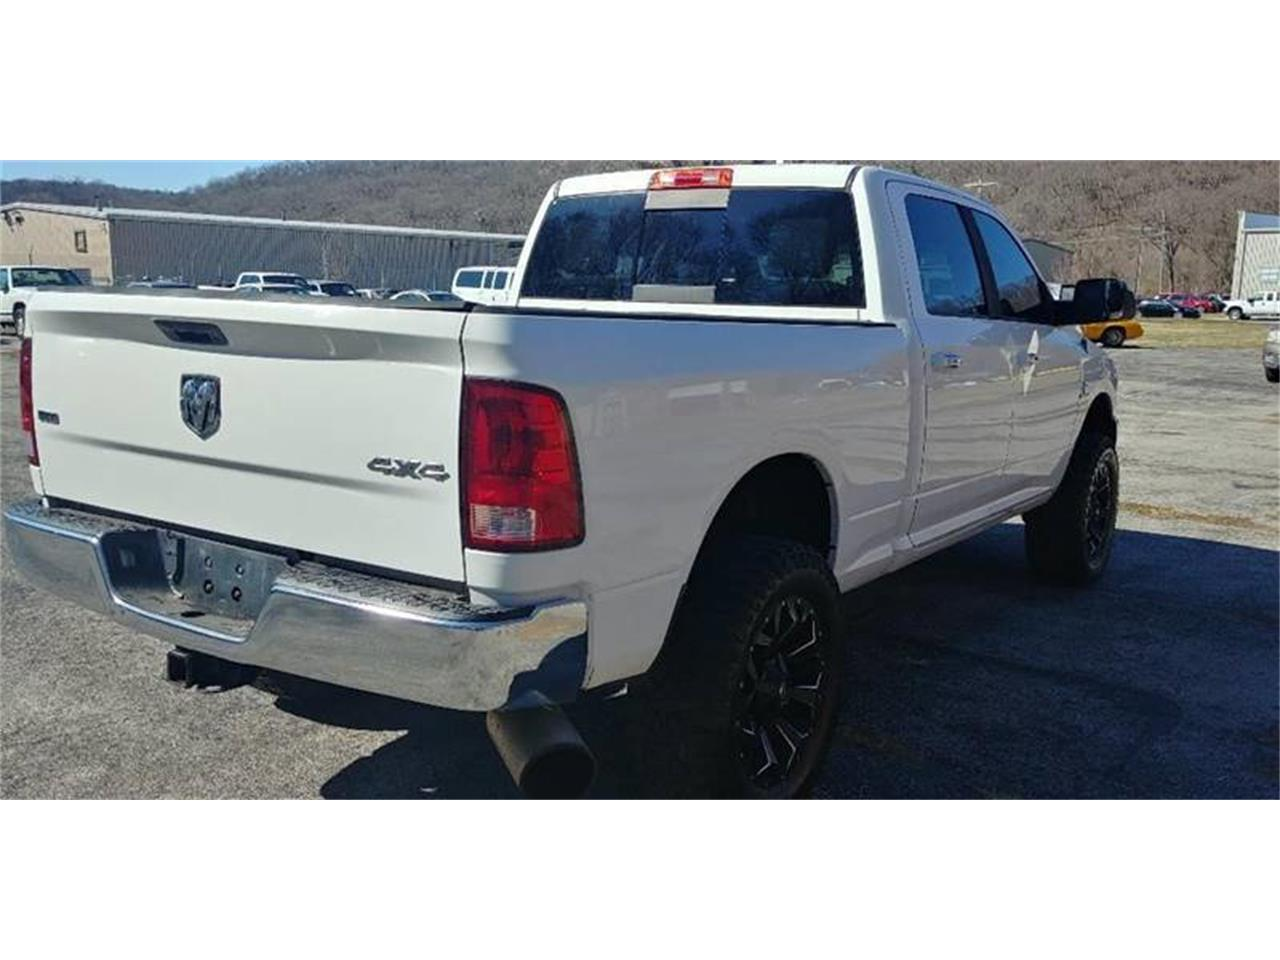 Large Picture of 2013 Dodge Ram 2500 located in Kansas - $26,980.00 - PBEK